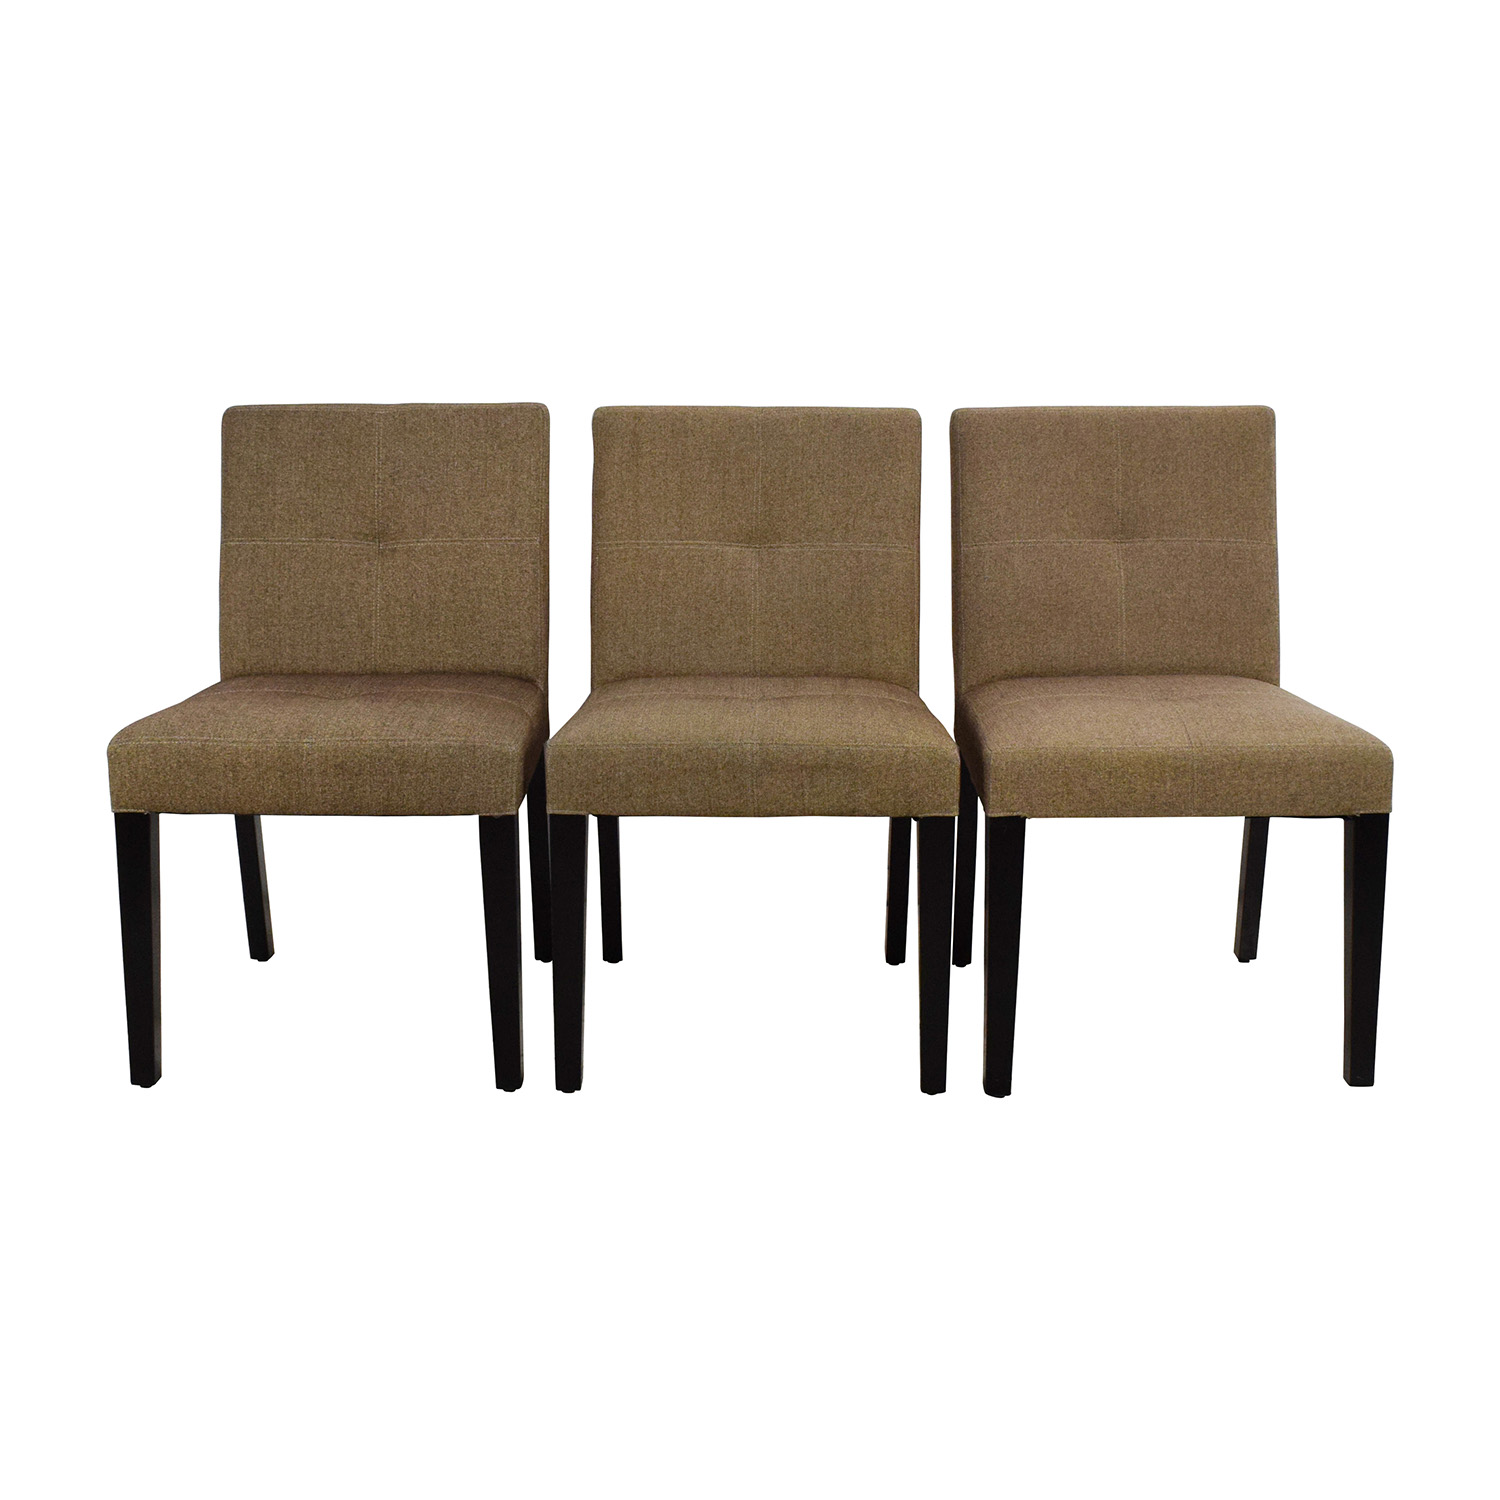 62 Off Crate Barrel Crate Barrel Epoch Chairs Chairs